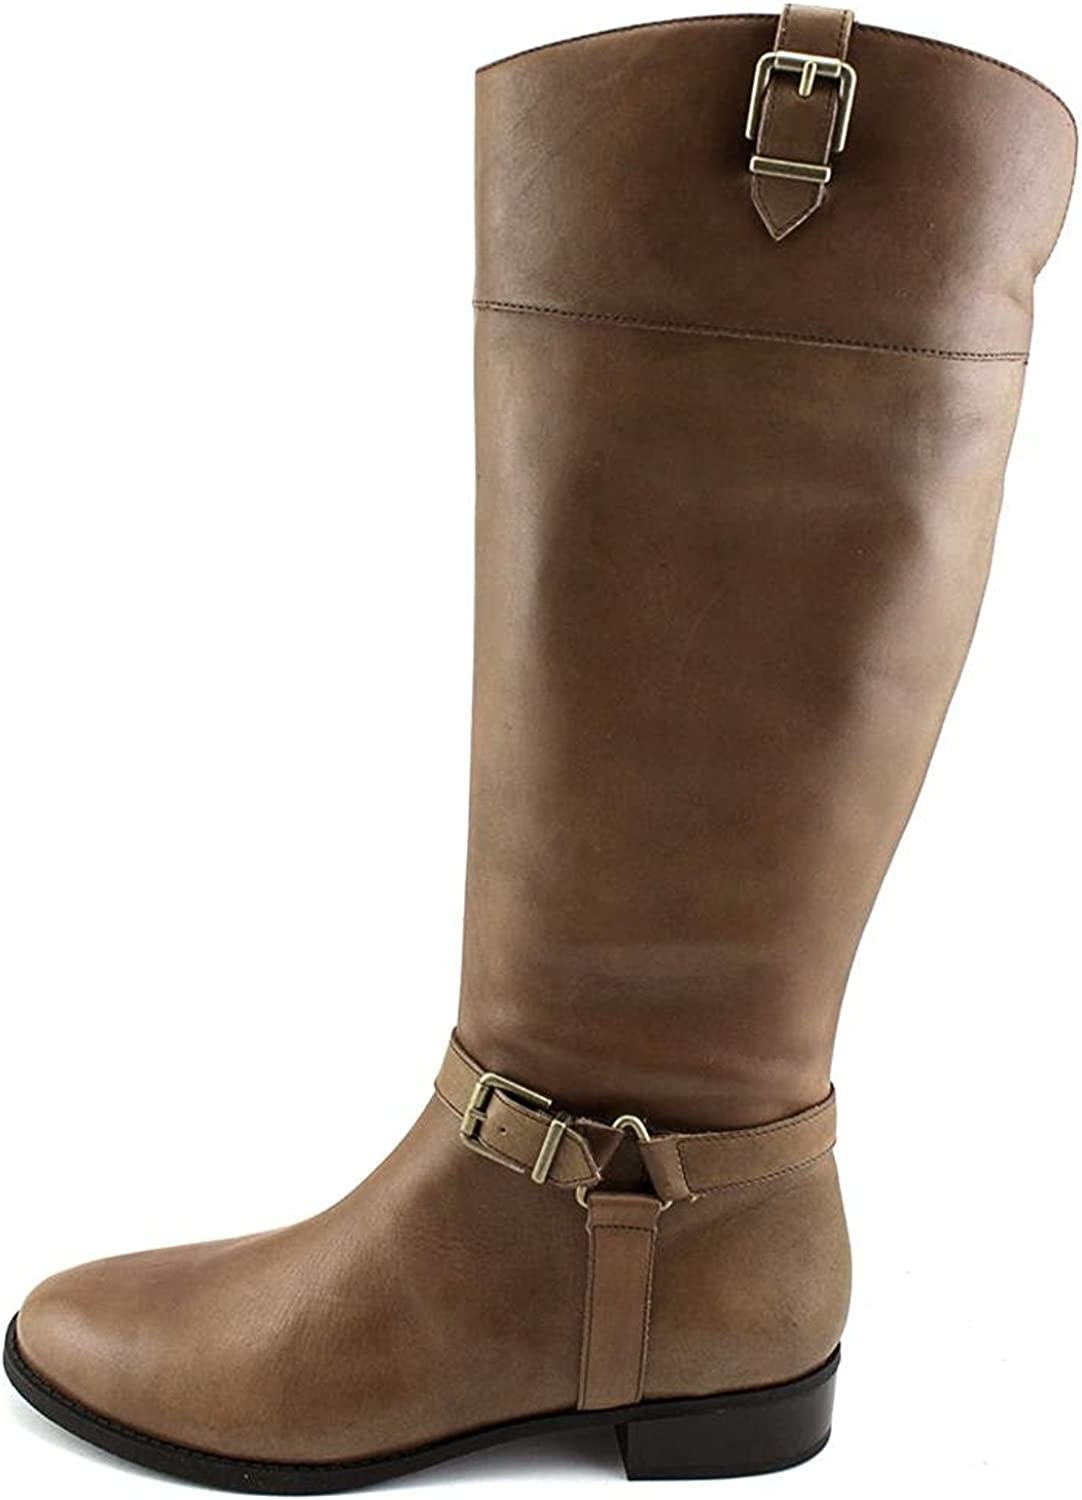 INC International Concepts Womens Fedee WC Leather Closed Toe, Cement, Size 9.5